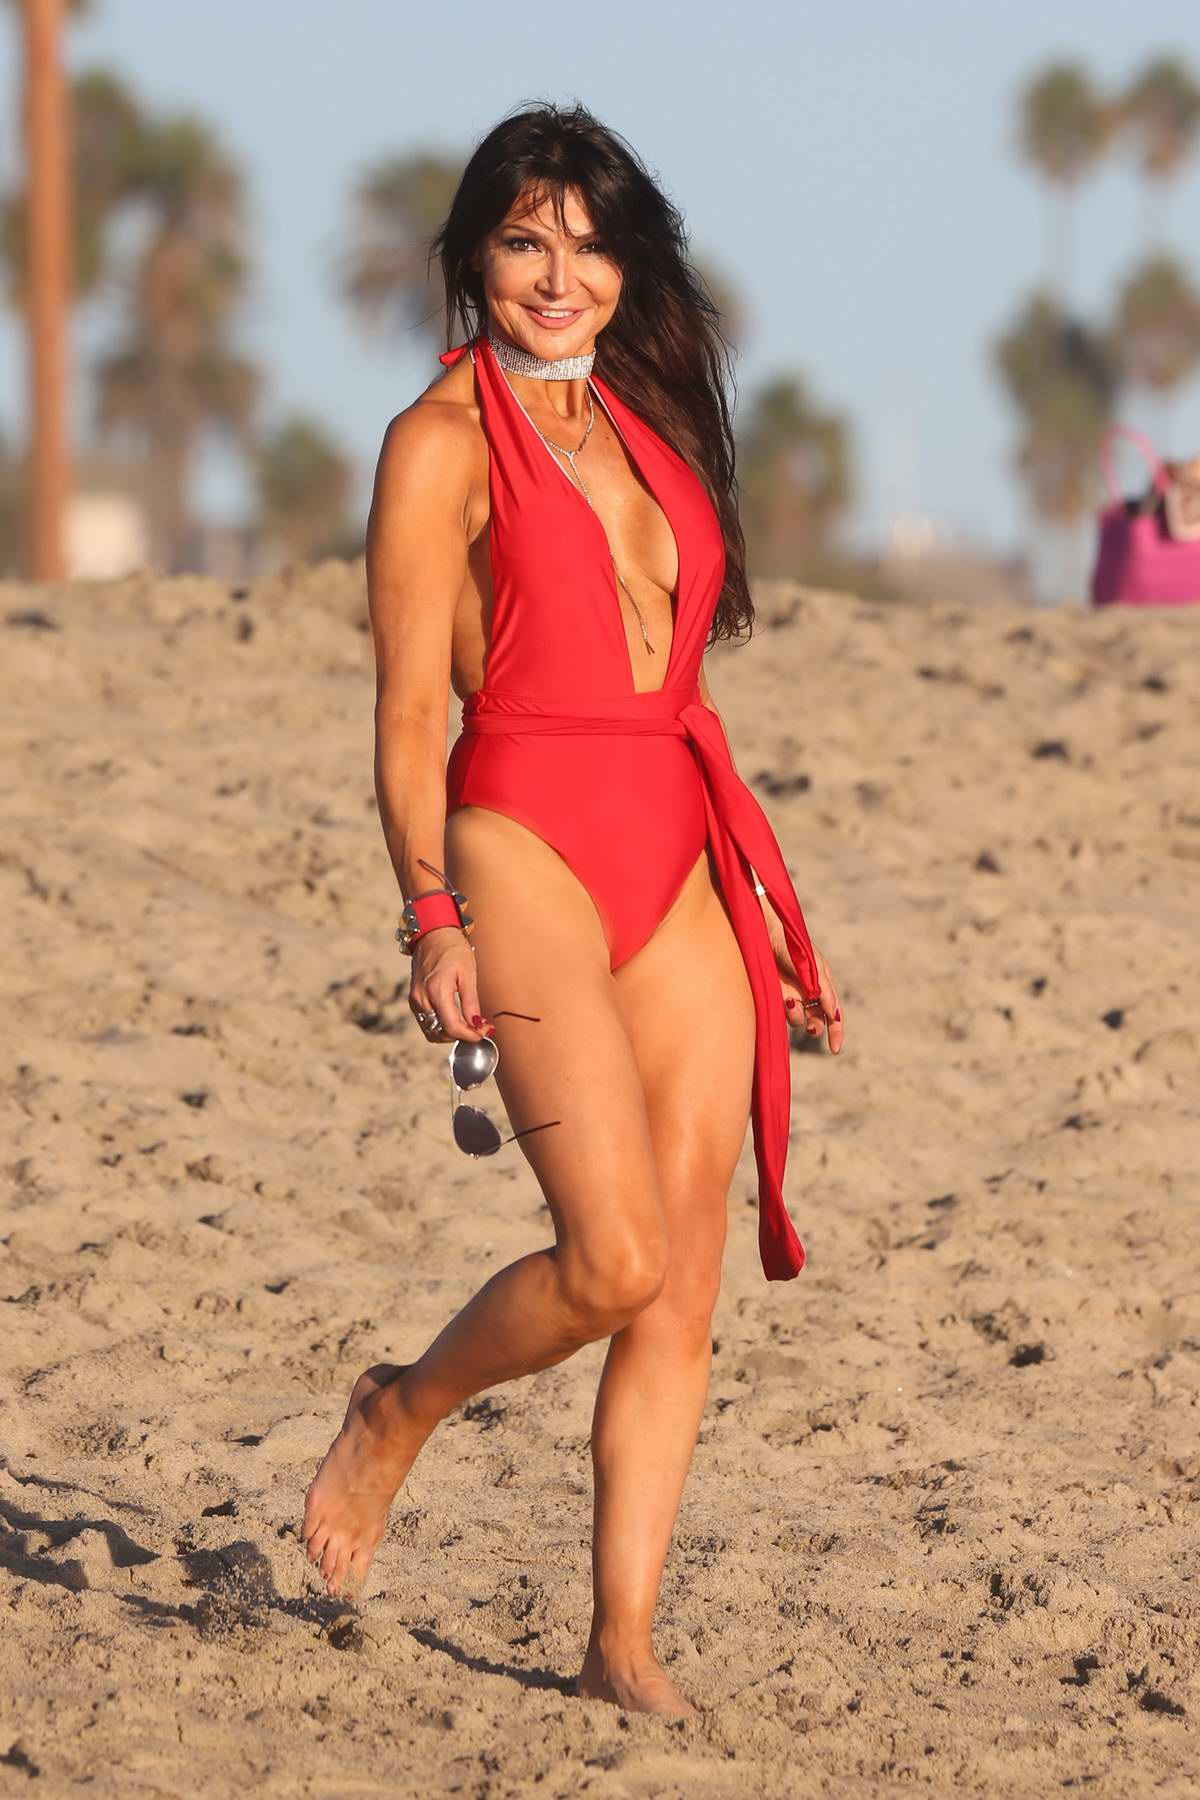 Lizzie Cundy in a red swimsuit enjoying the beach in Los Angeles